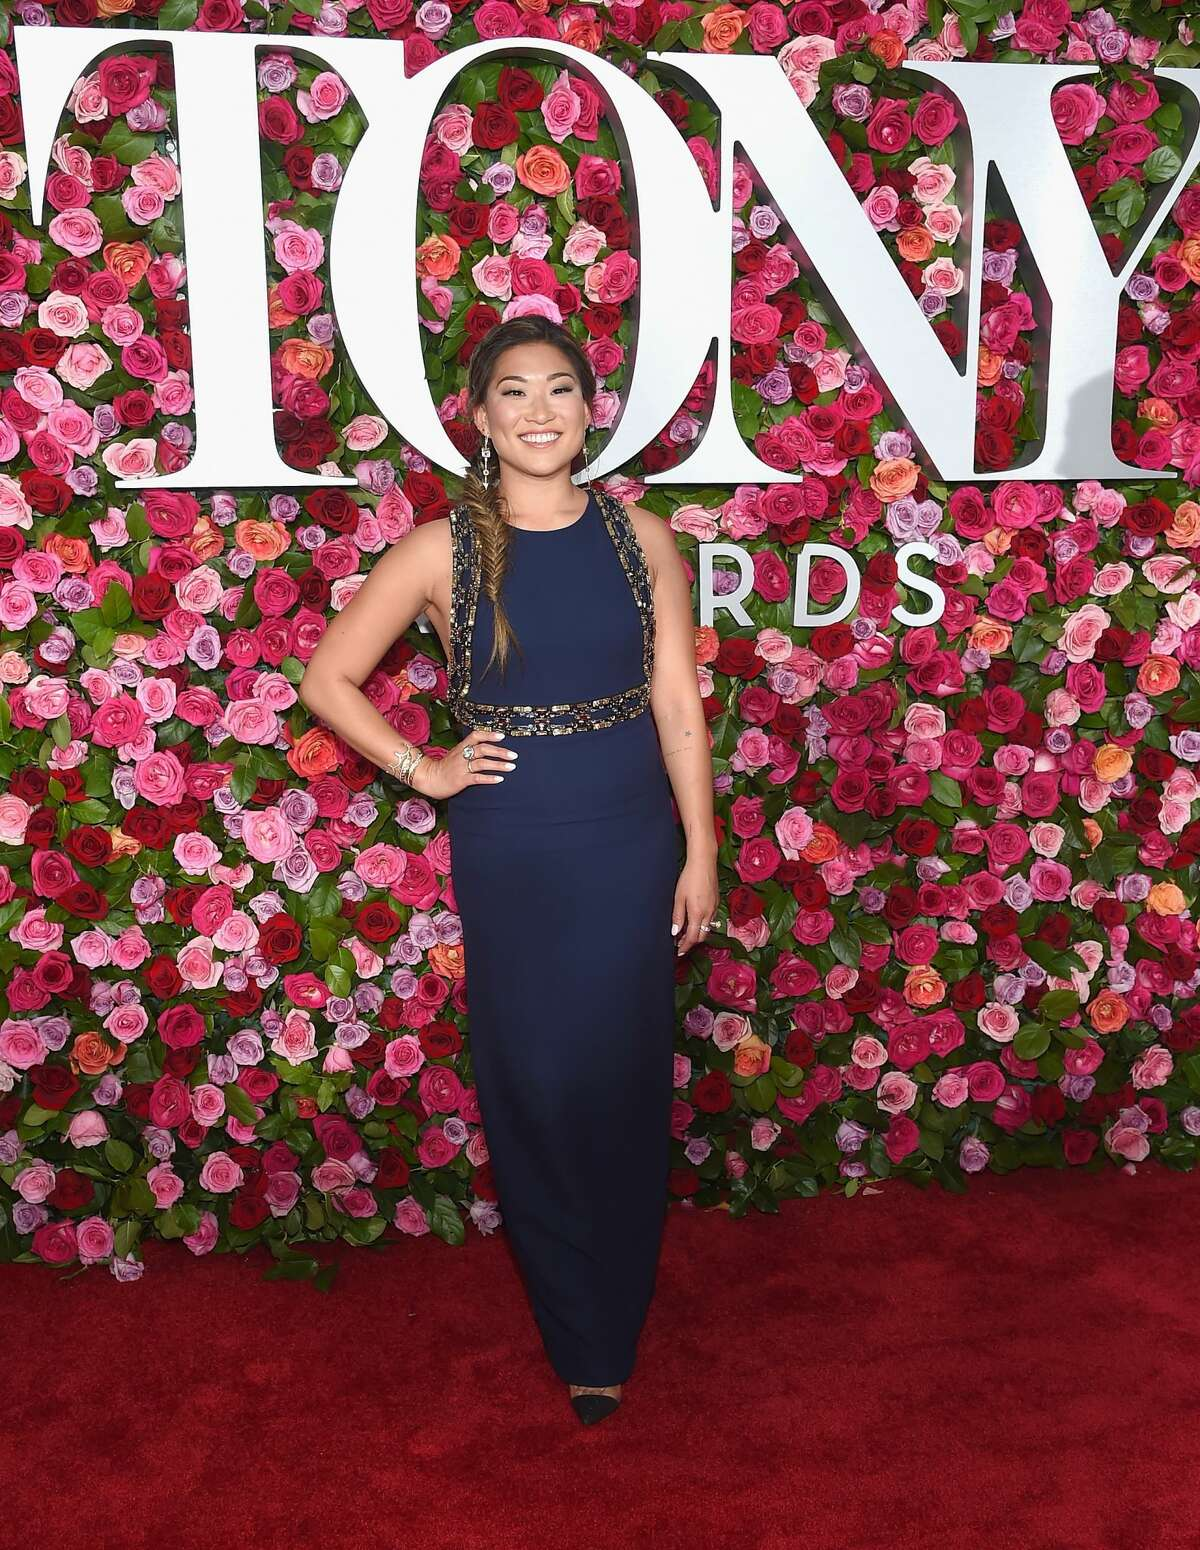 NEW YORK, NY - JUNE 10: Jenna Ushkowitz attends the 72nd Annual Tony Awards at Radio City Music Hall on June 10, 2018 in New York City. (Photo by Jamie McCarthy/Getty Images)